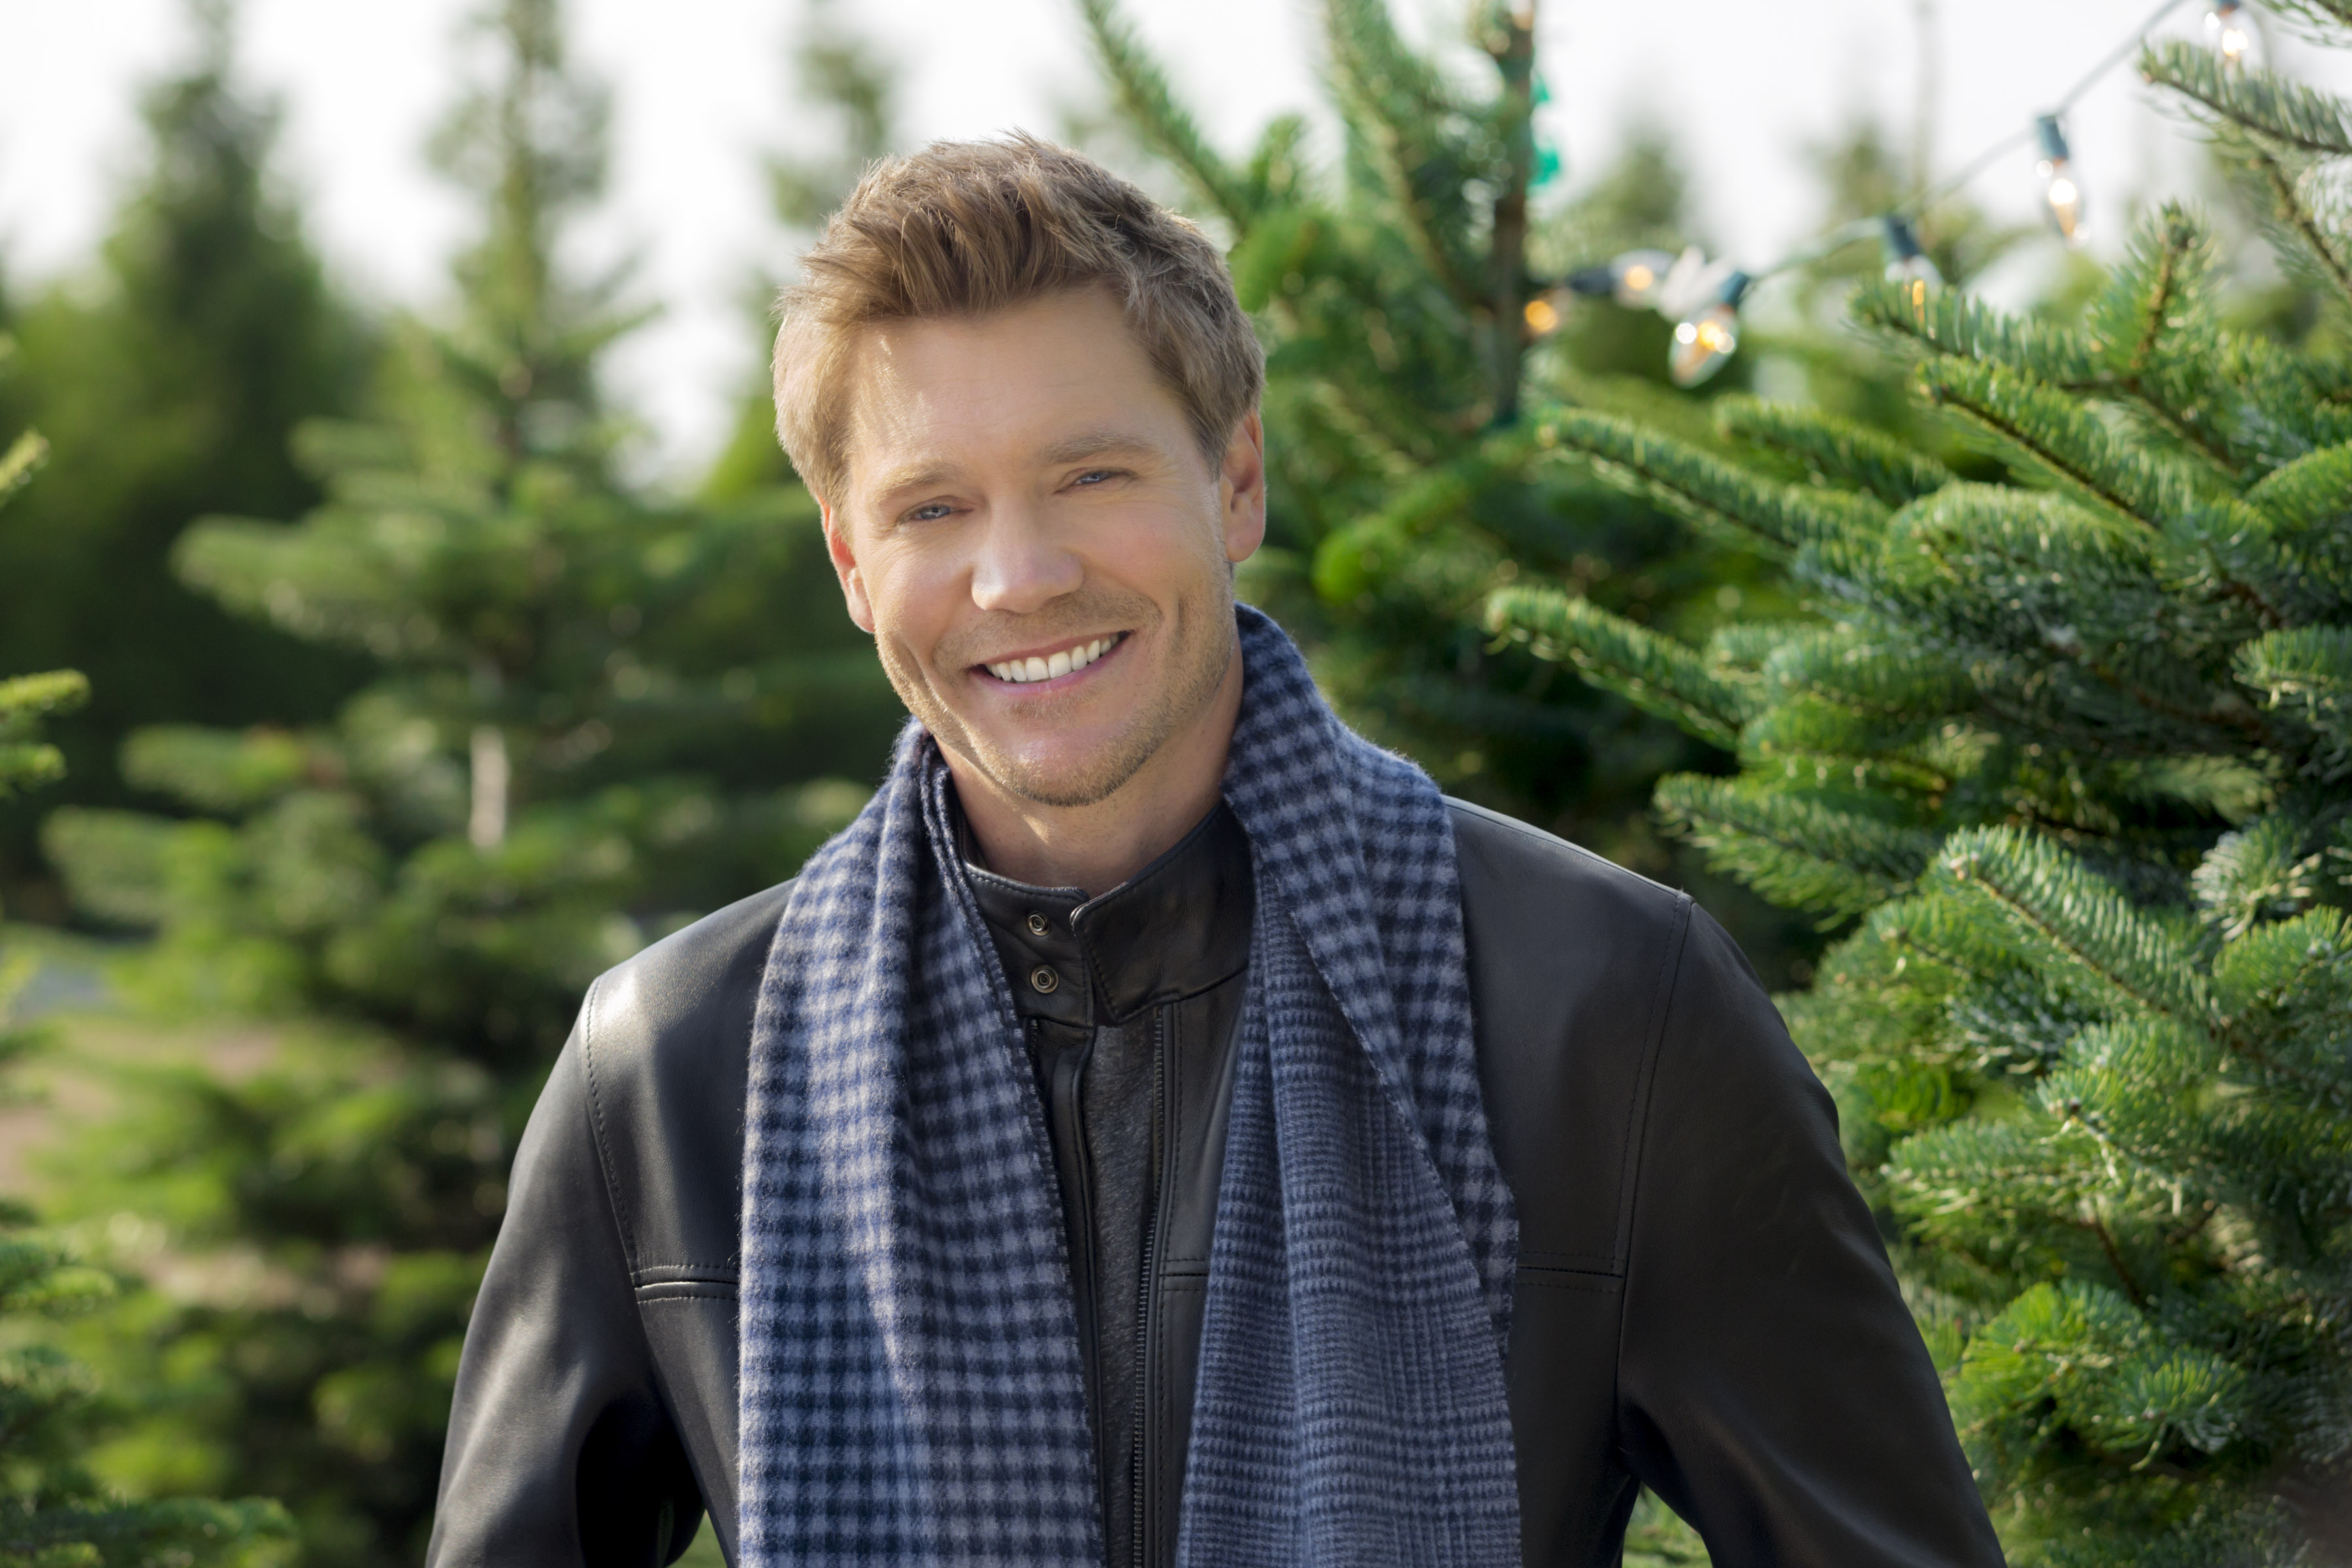 Cast Of Road To Christmas  2020 Chad Michael Murray as Danny Wise on Road to Christmas